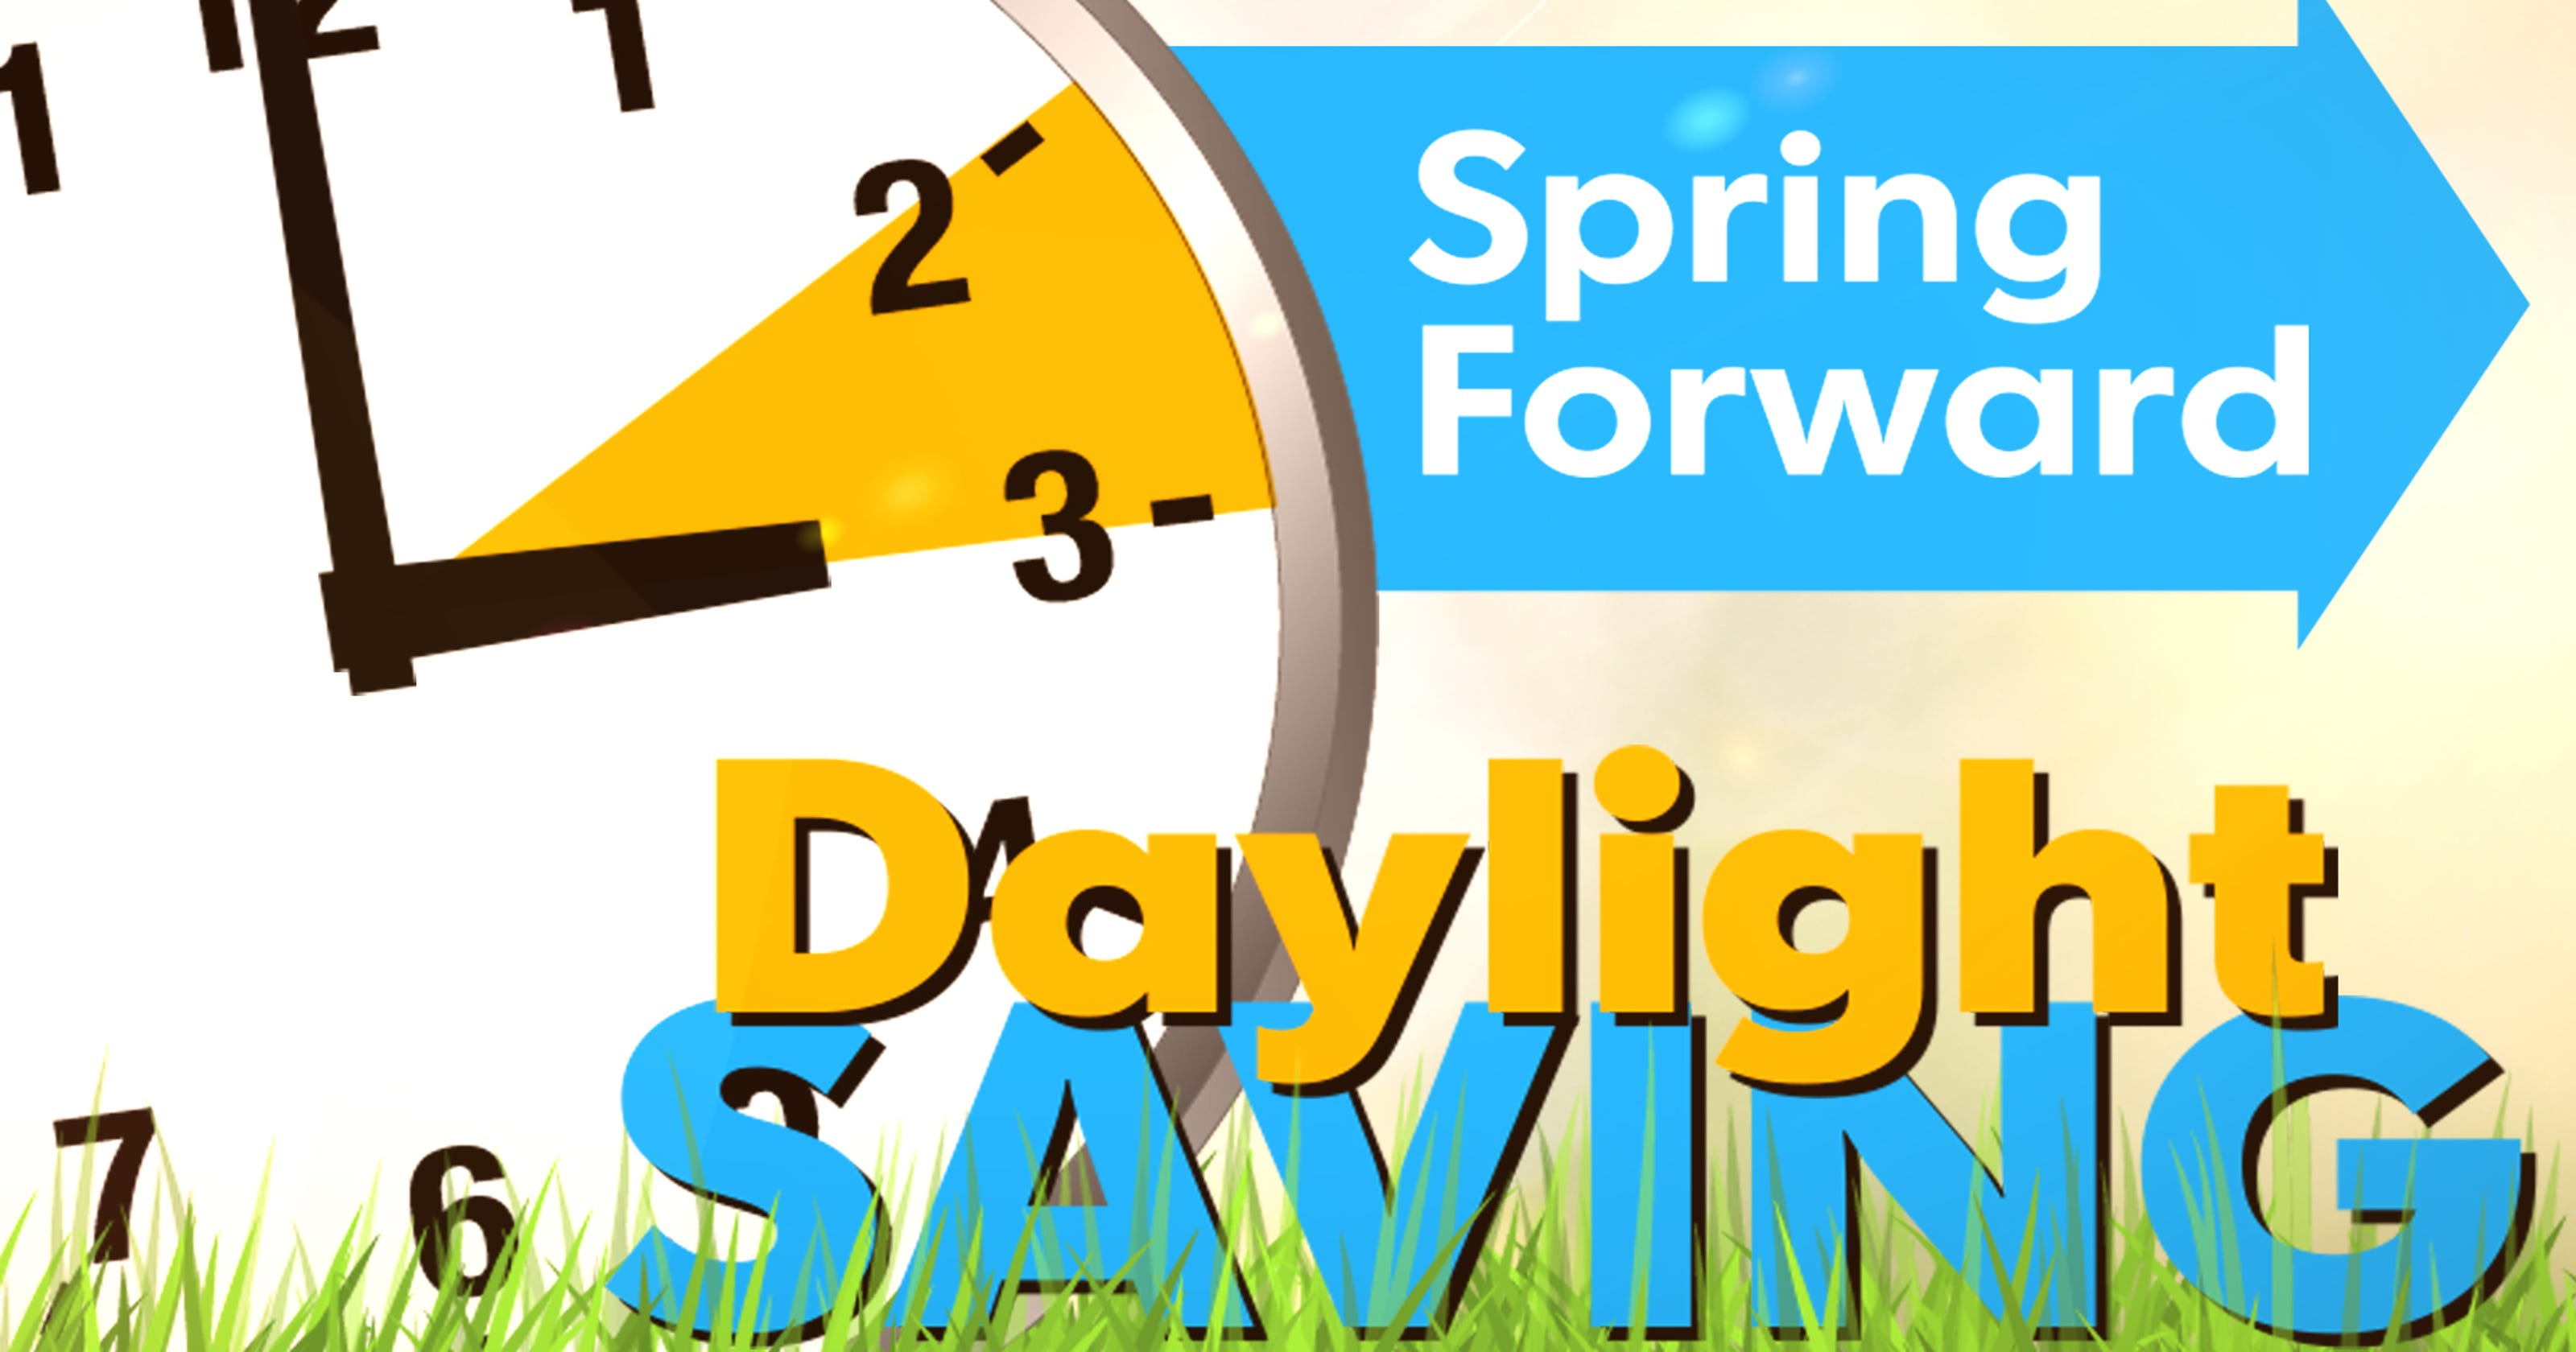 Spring Forward When Is Daylight Savings Time 2018